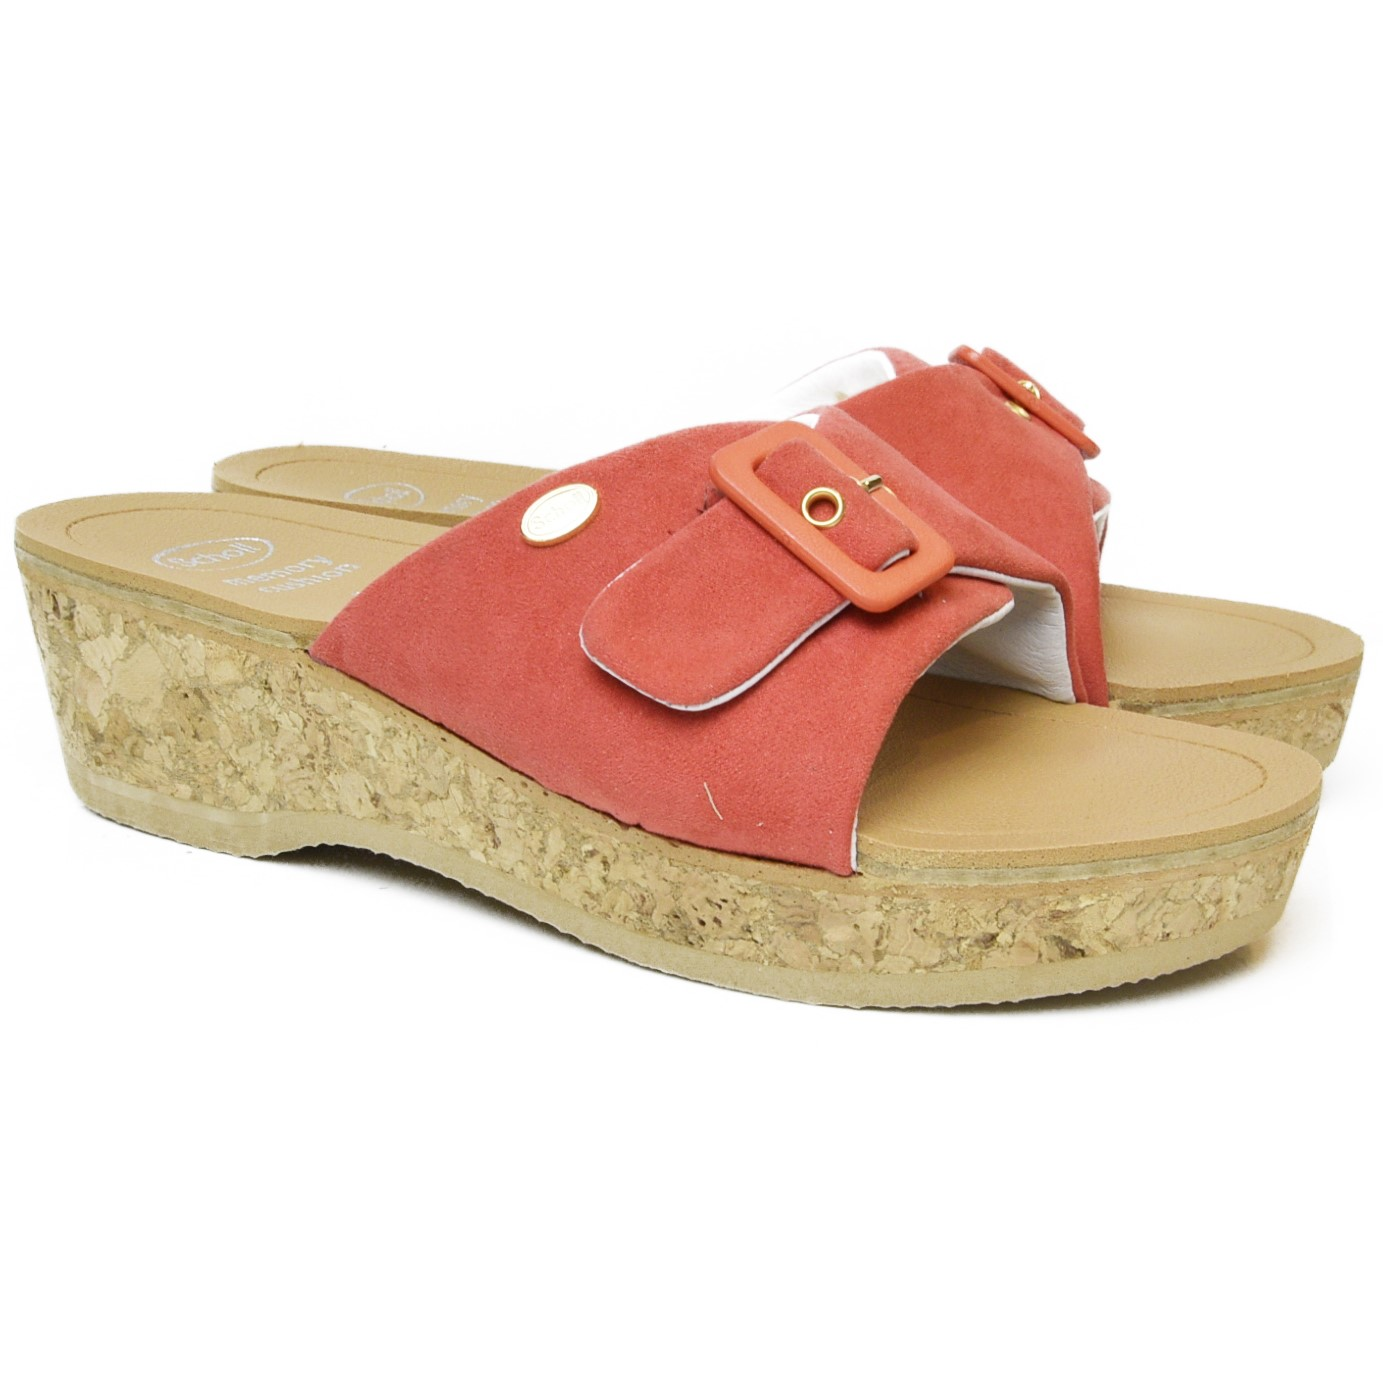 176717386c6 DR. SCHOLL WOMEN S CLOG WITH WEDGE HEEL IN REAL CORK WAPPY CORAL ...